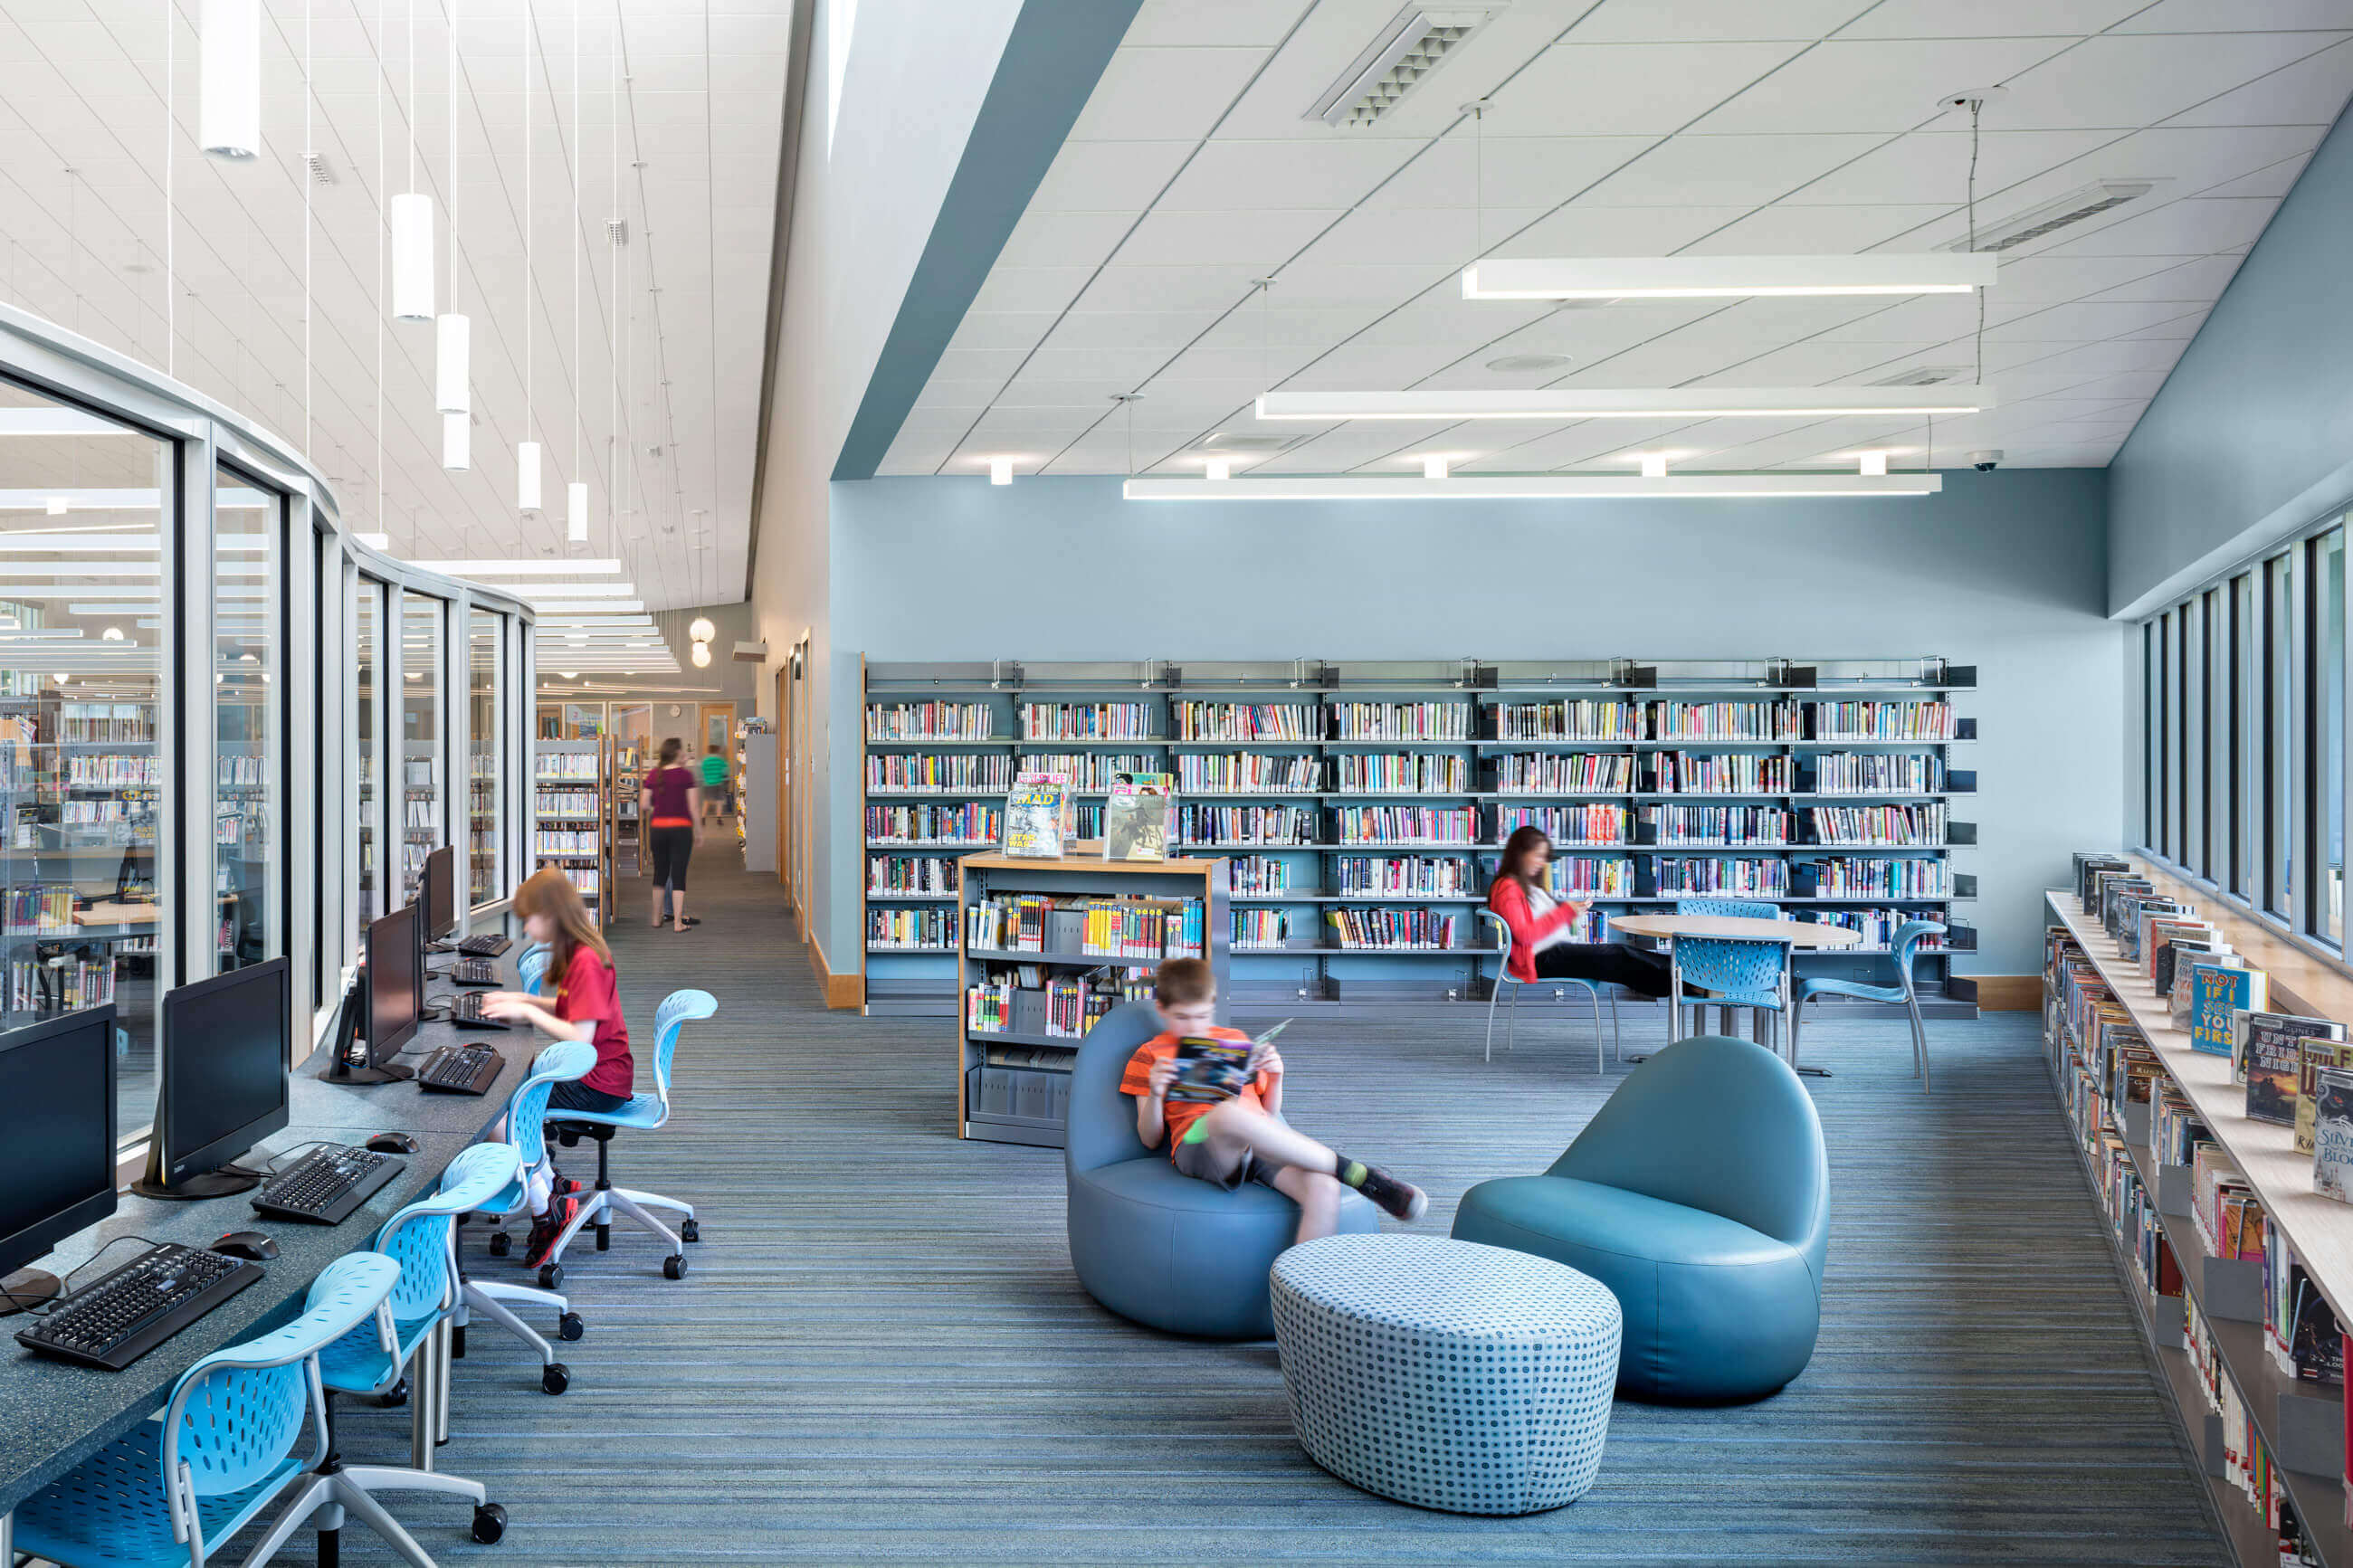 Computers with curvy glass separation, modern blue seating area with bookshelves behind.